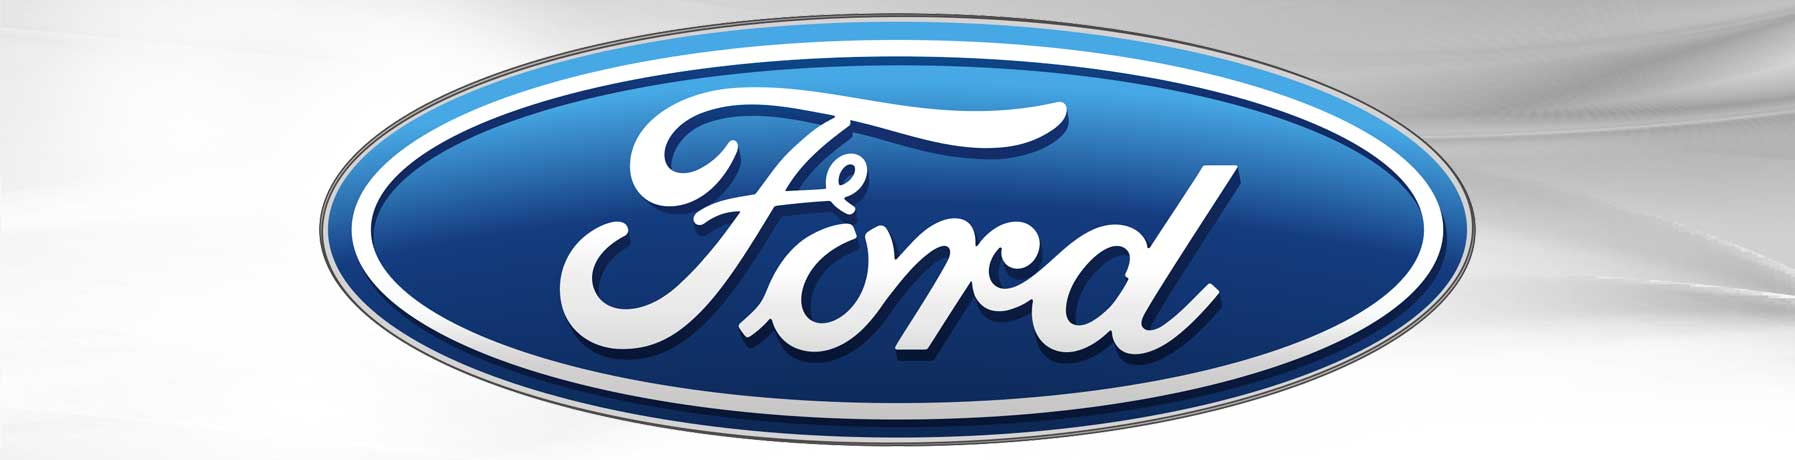 We service Ford cars & trucks